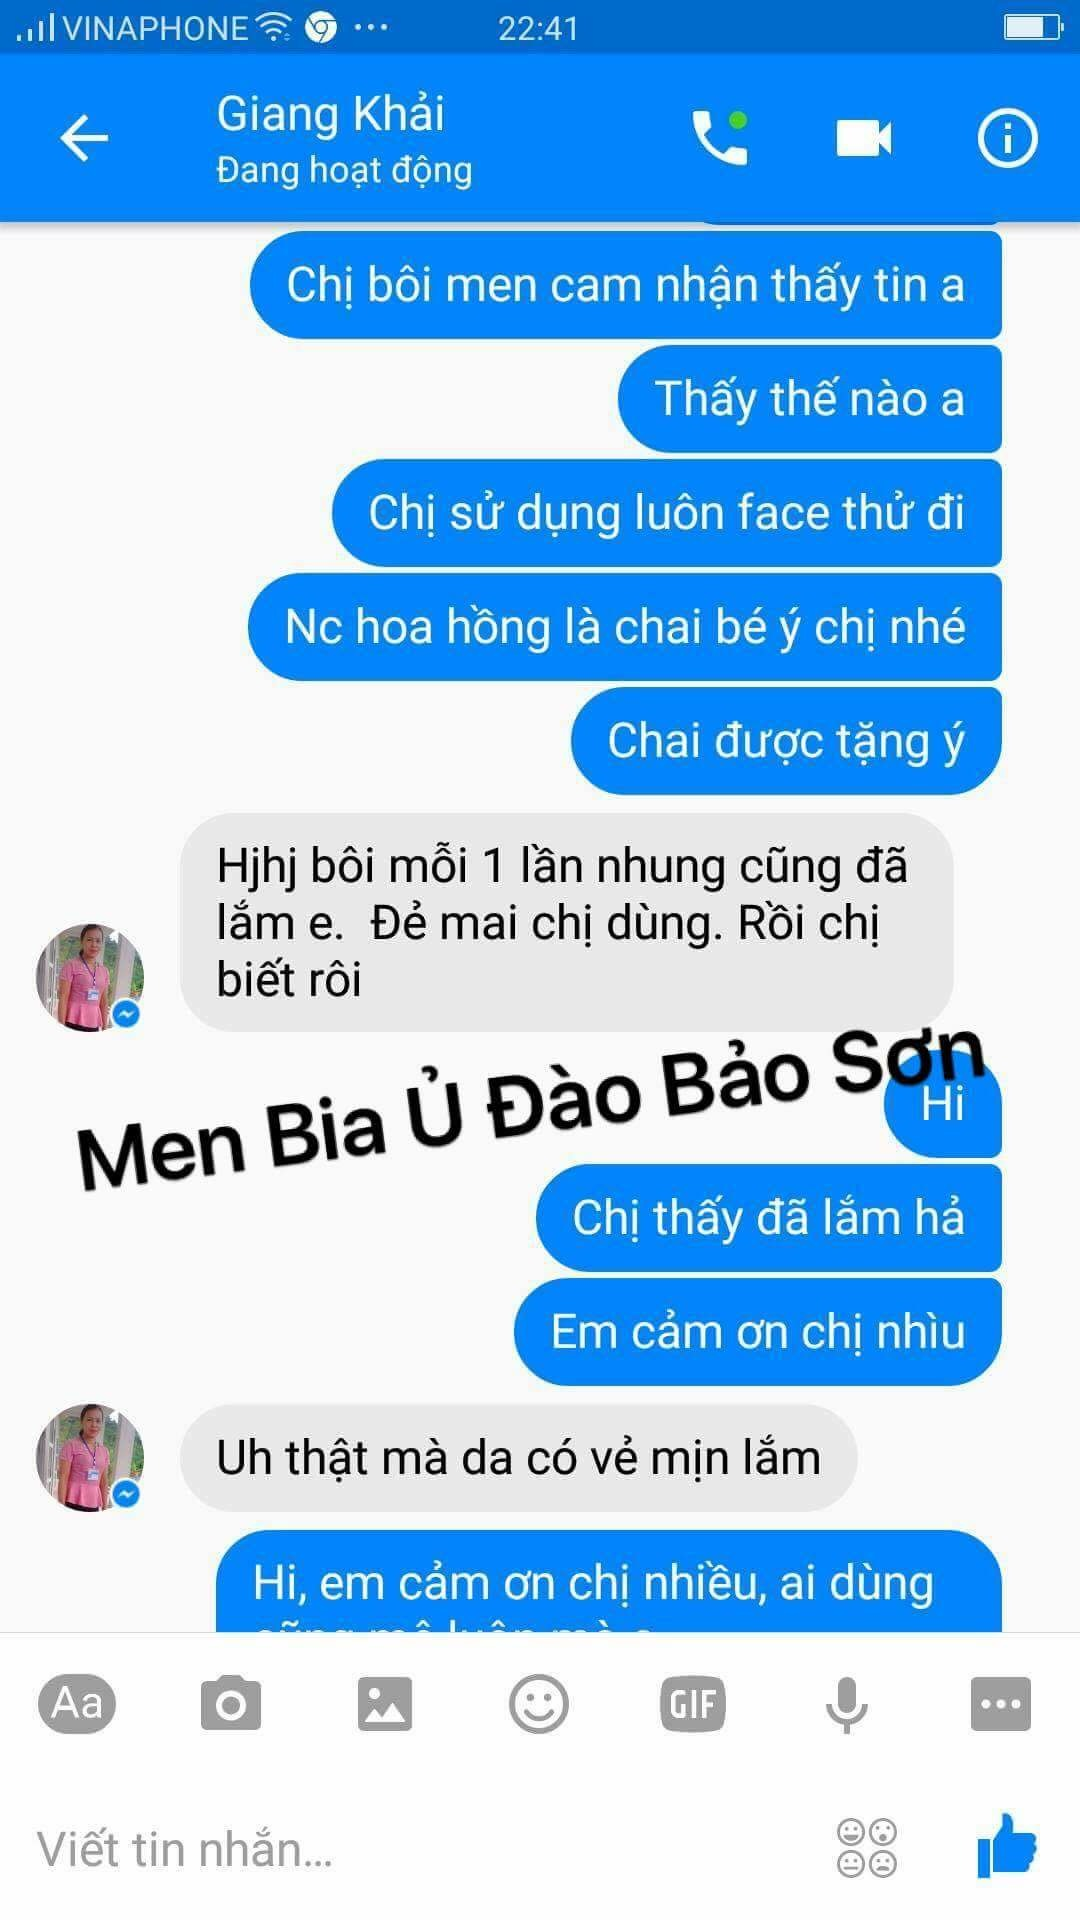 Men bia u dao bao son